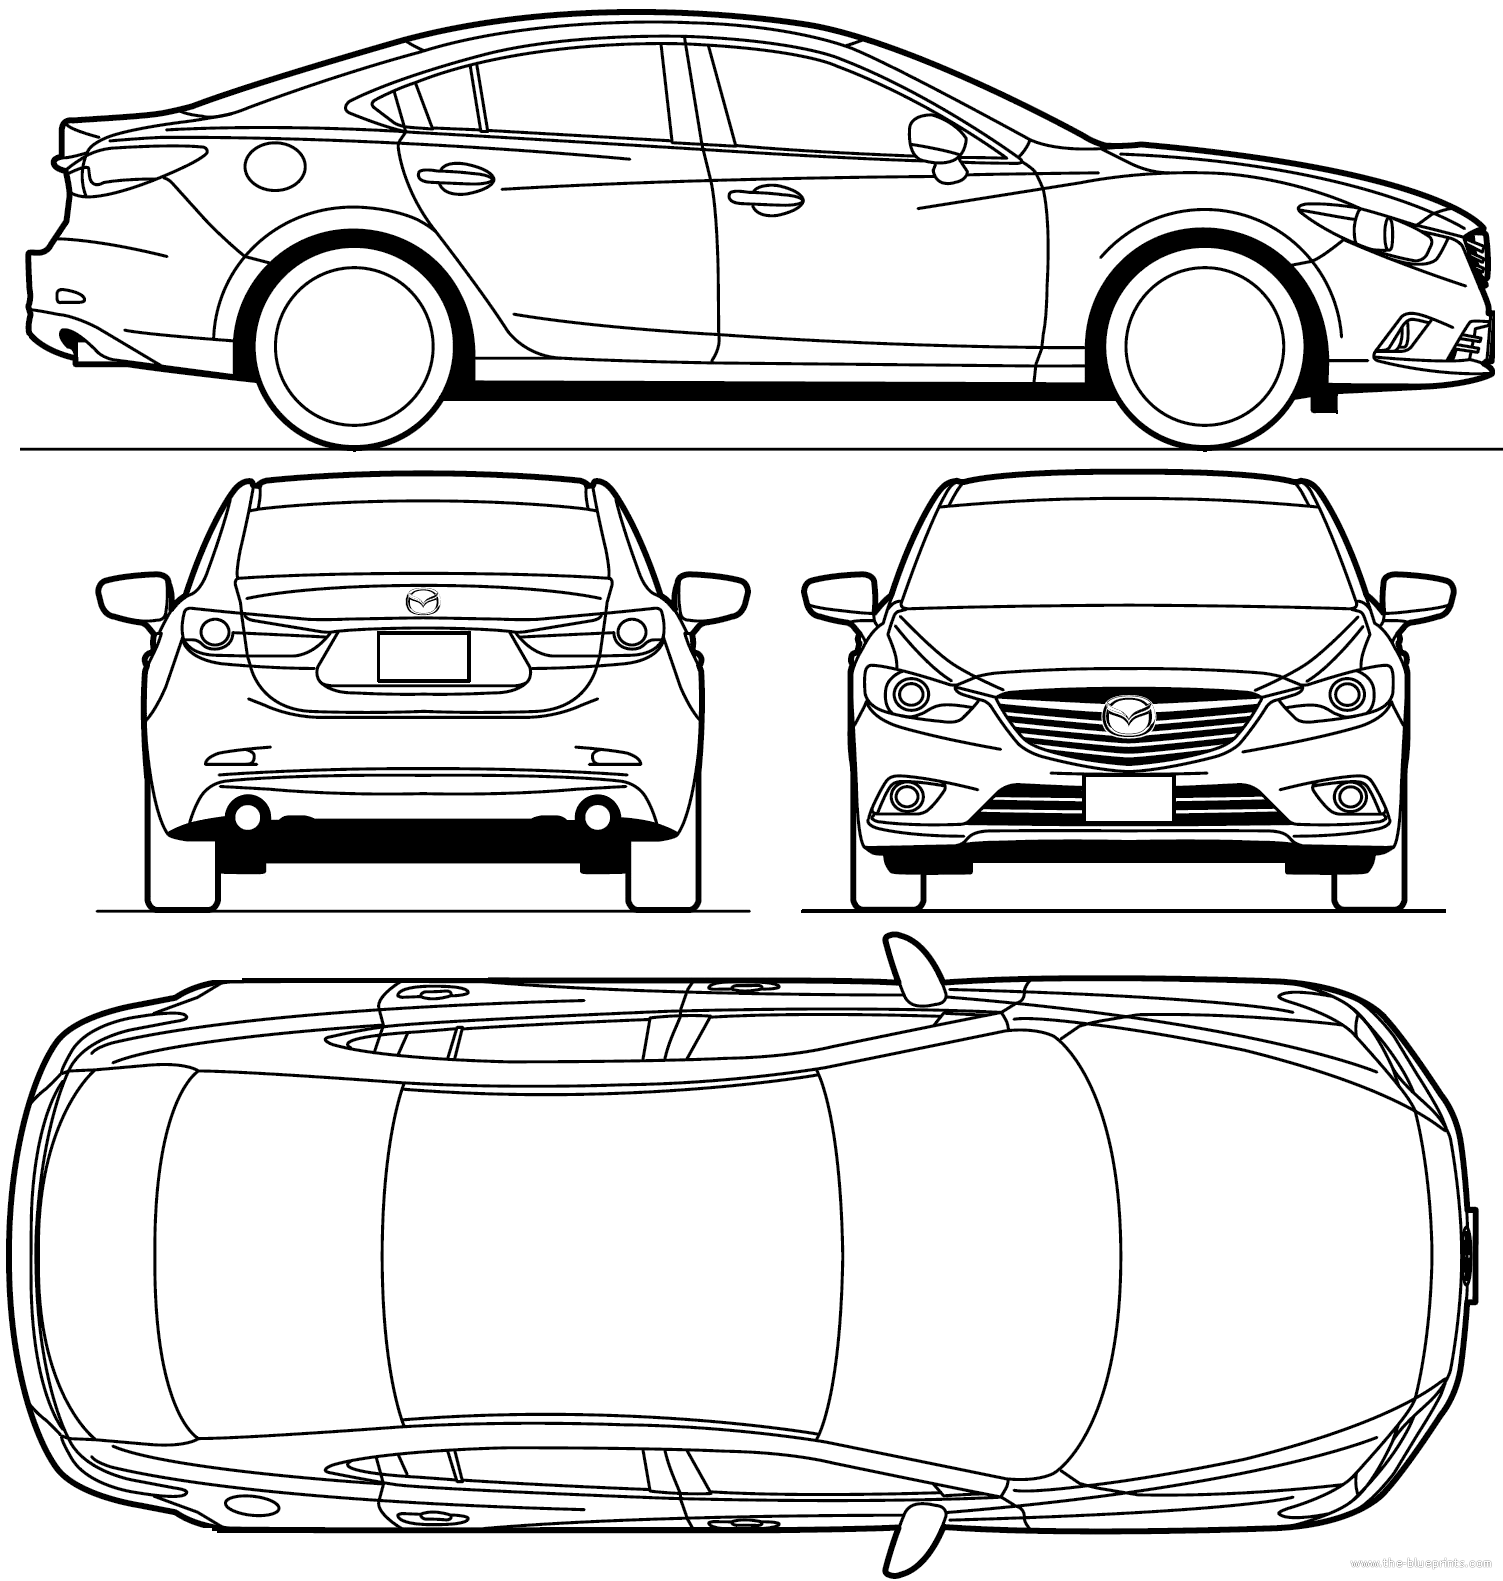 Cgfrog Most Loved Car Blueprints For 3d Modeling